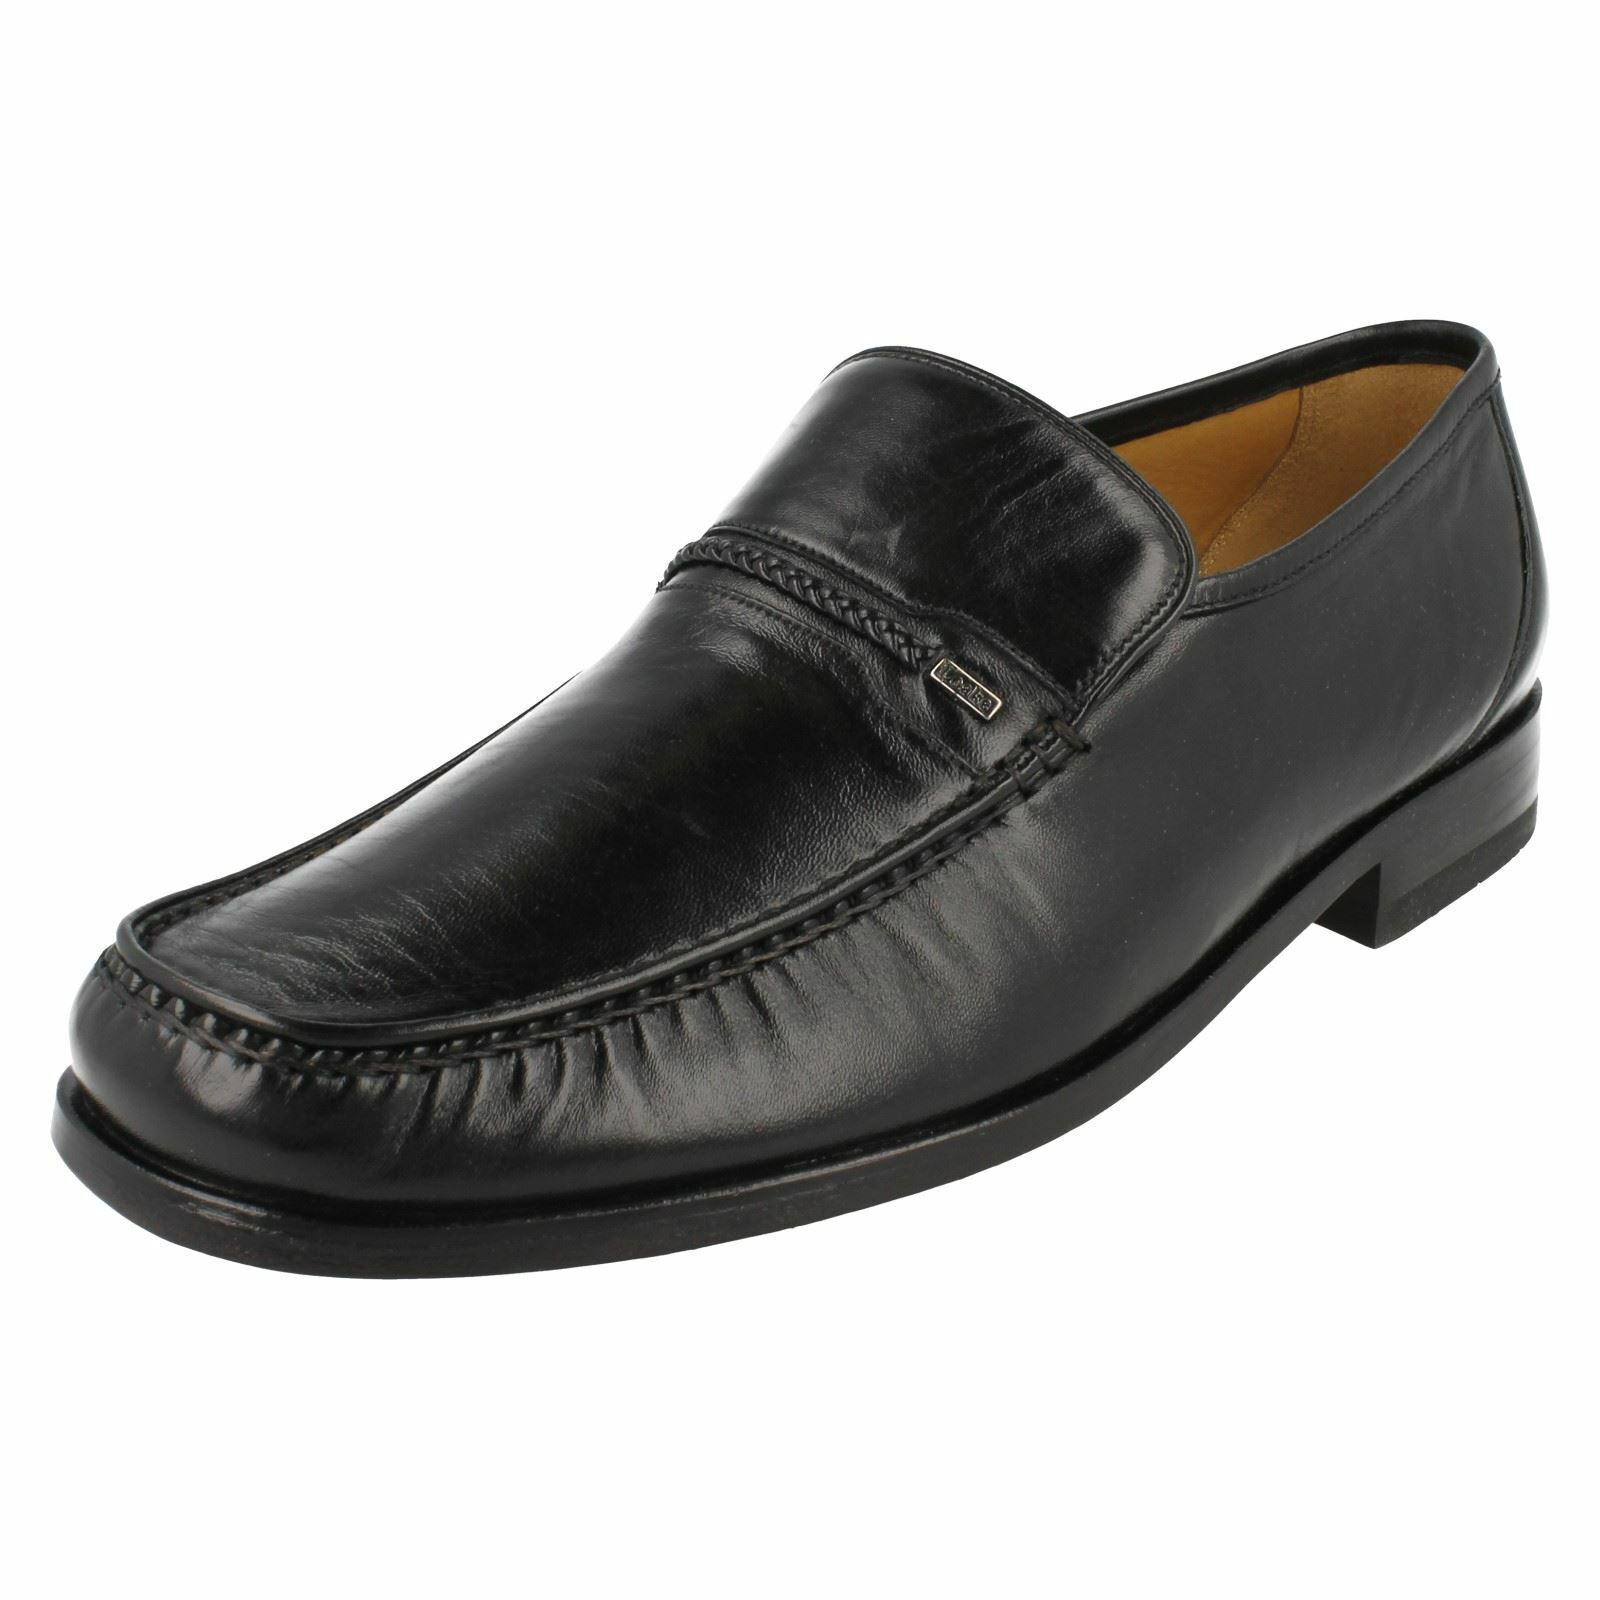 Mens Loakes Black Leather Slip On Moccasin Shoes F Fitting Reno